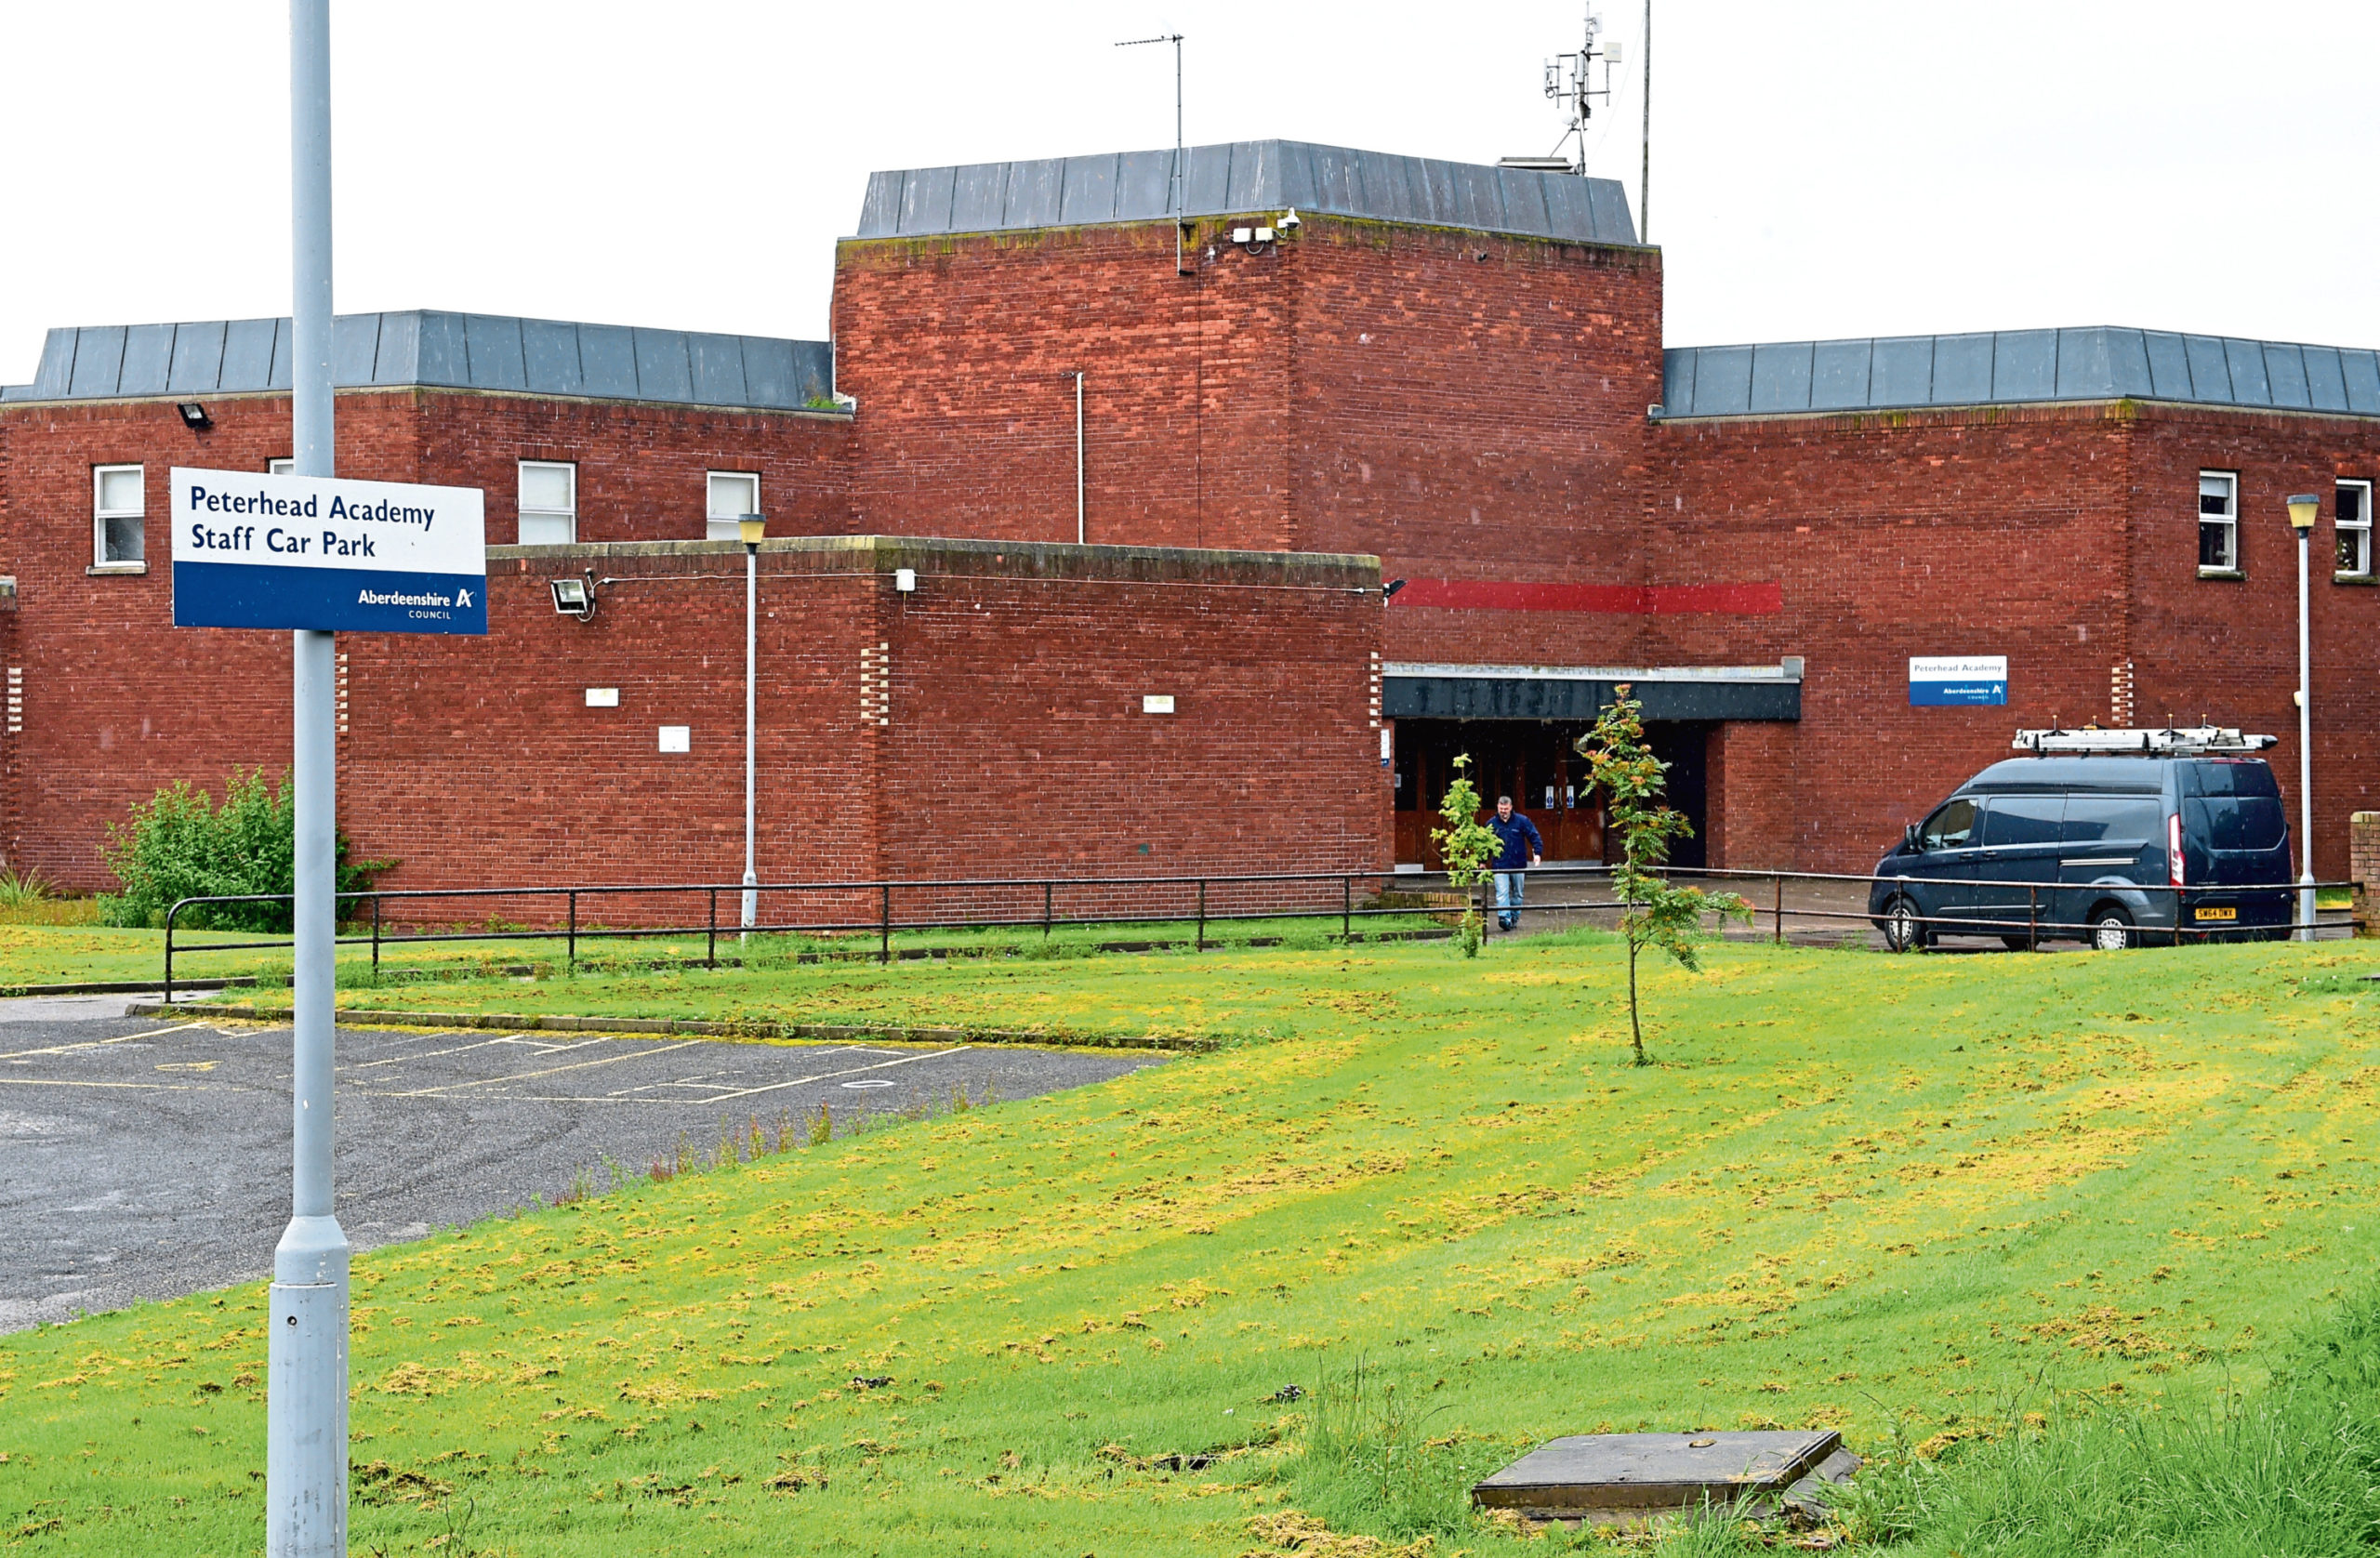 The current Peterhead Academy building